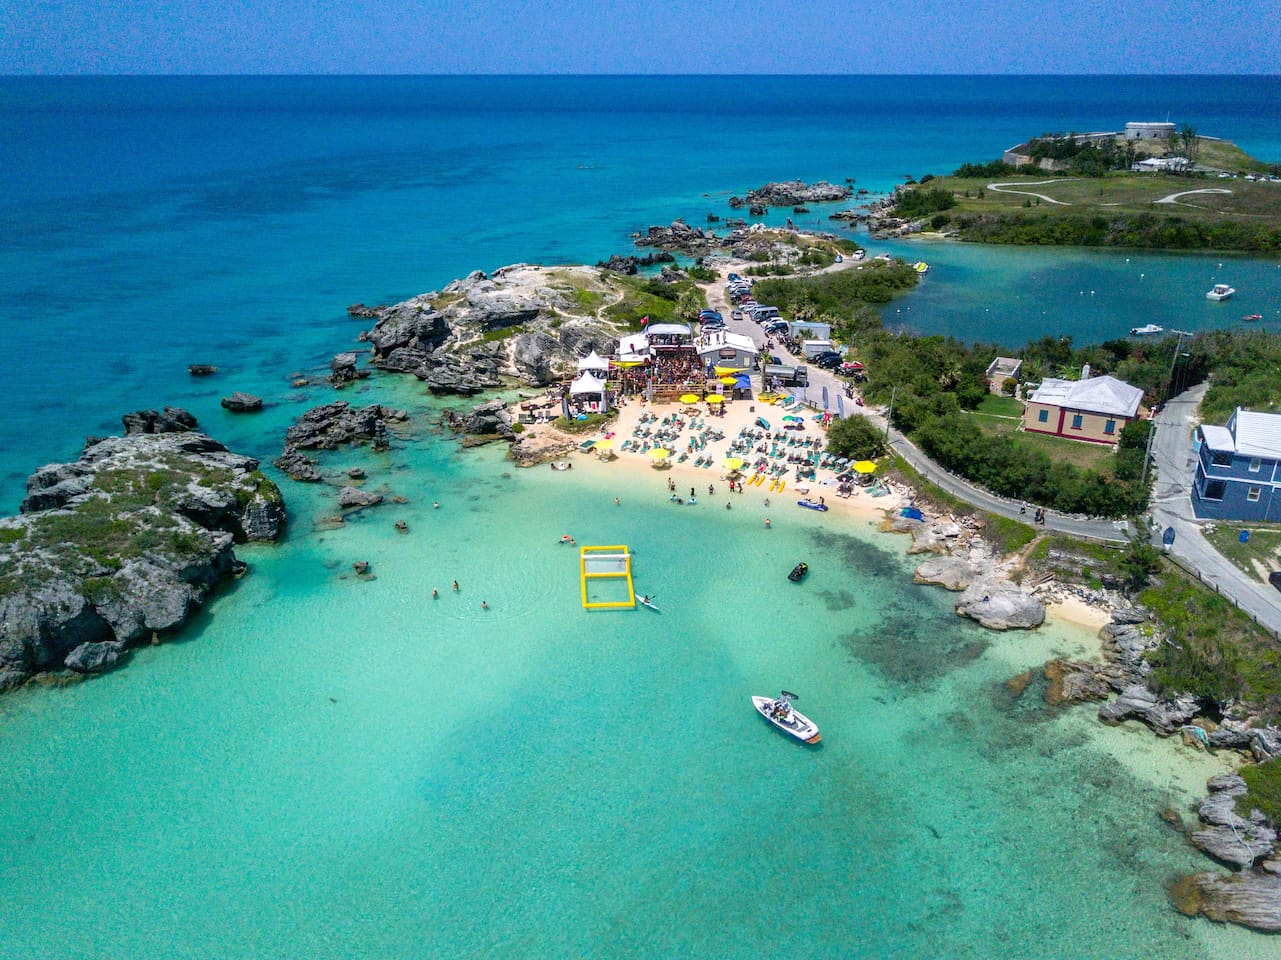 Ariel view of Tobacco Bay and our Beach House. (Dark Blue House)